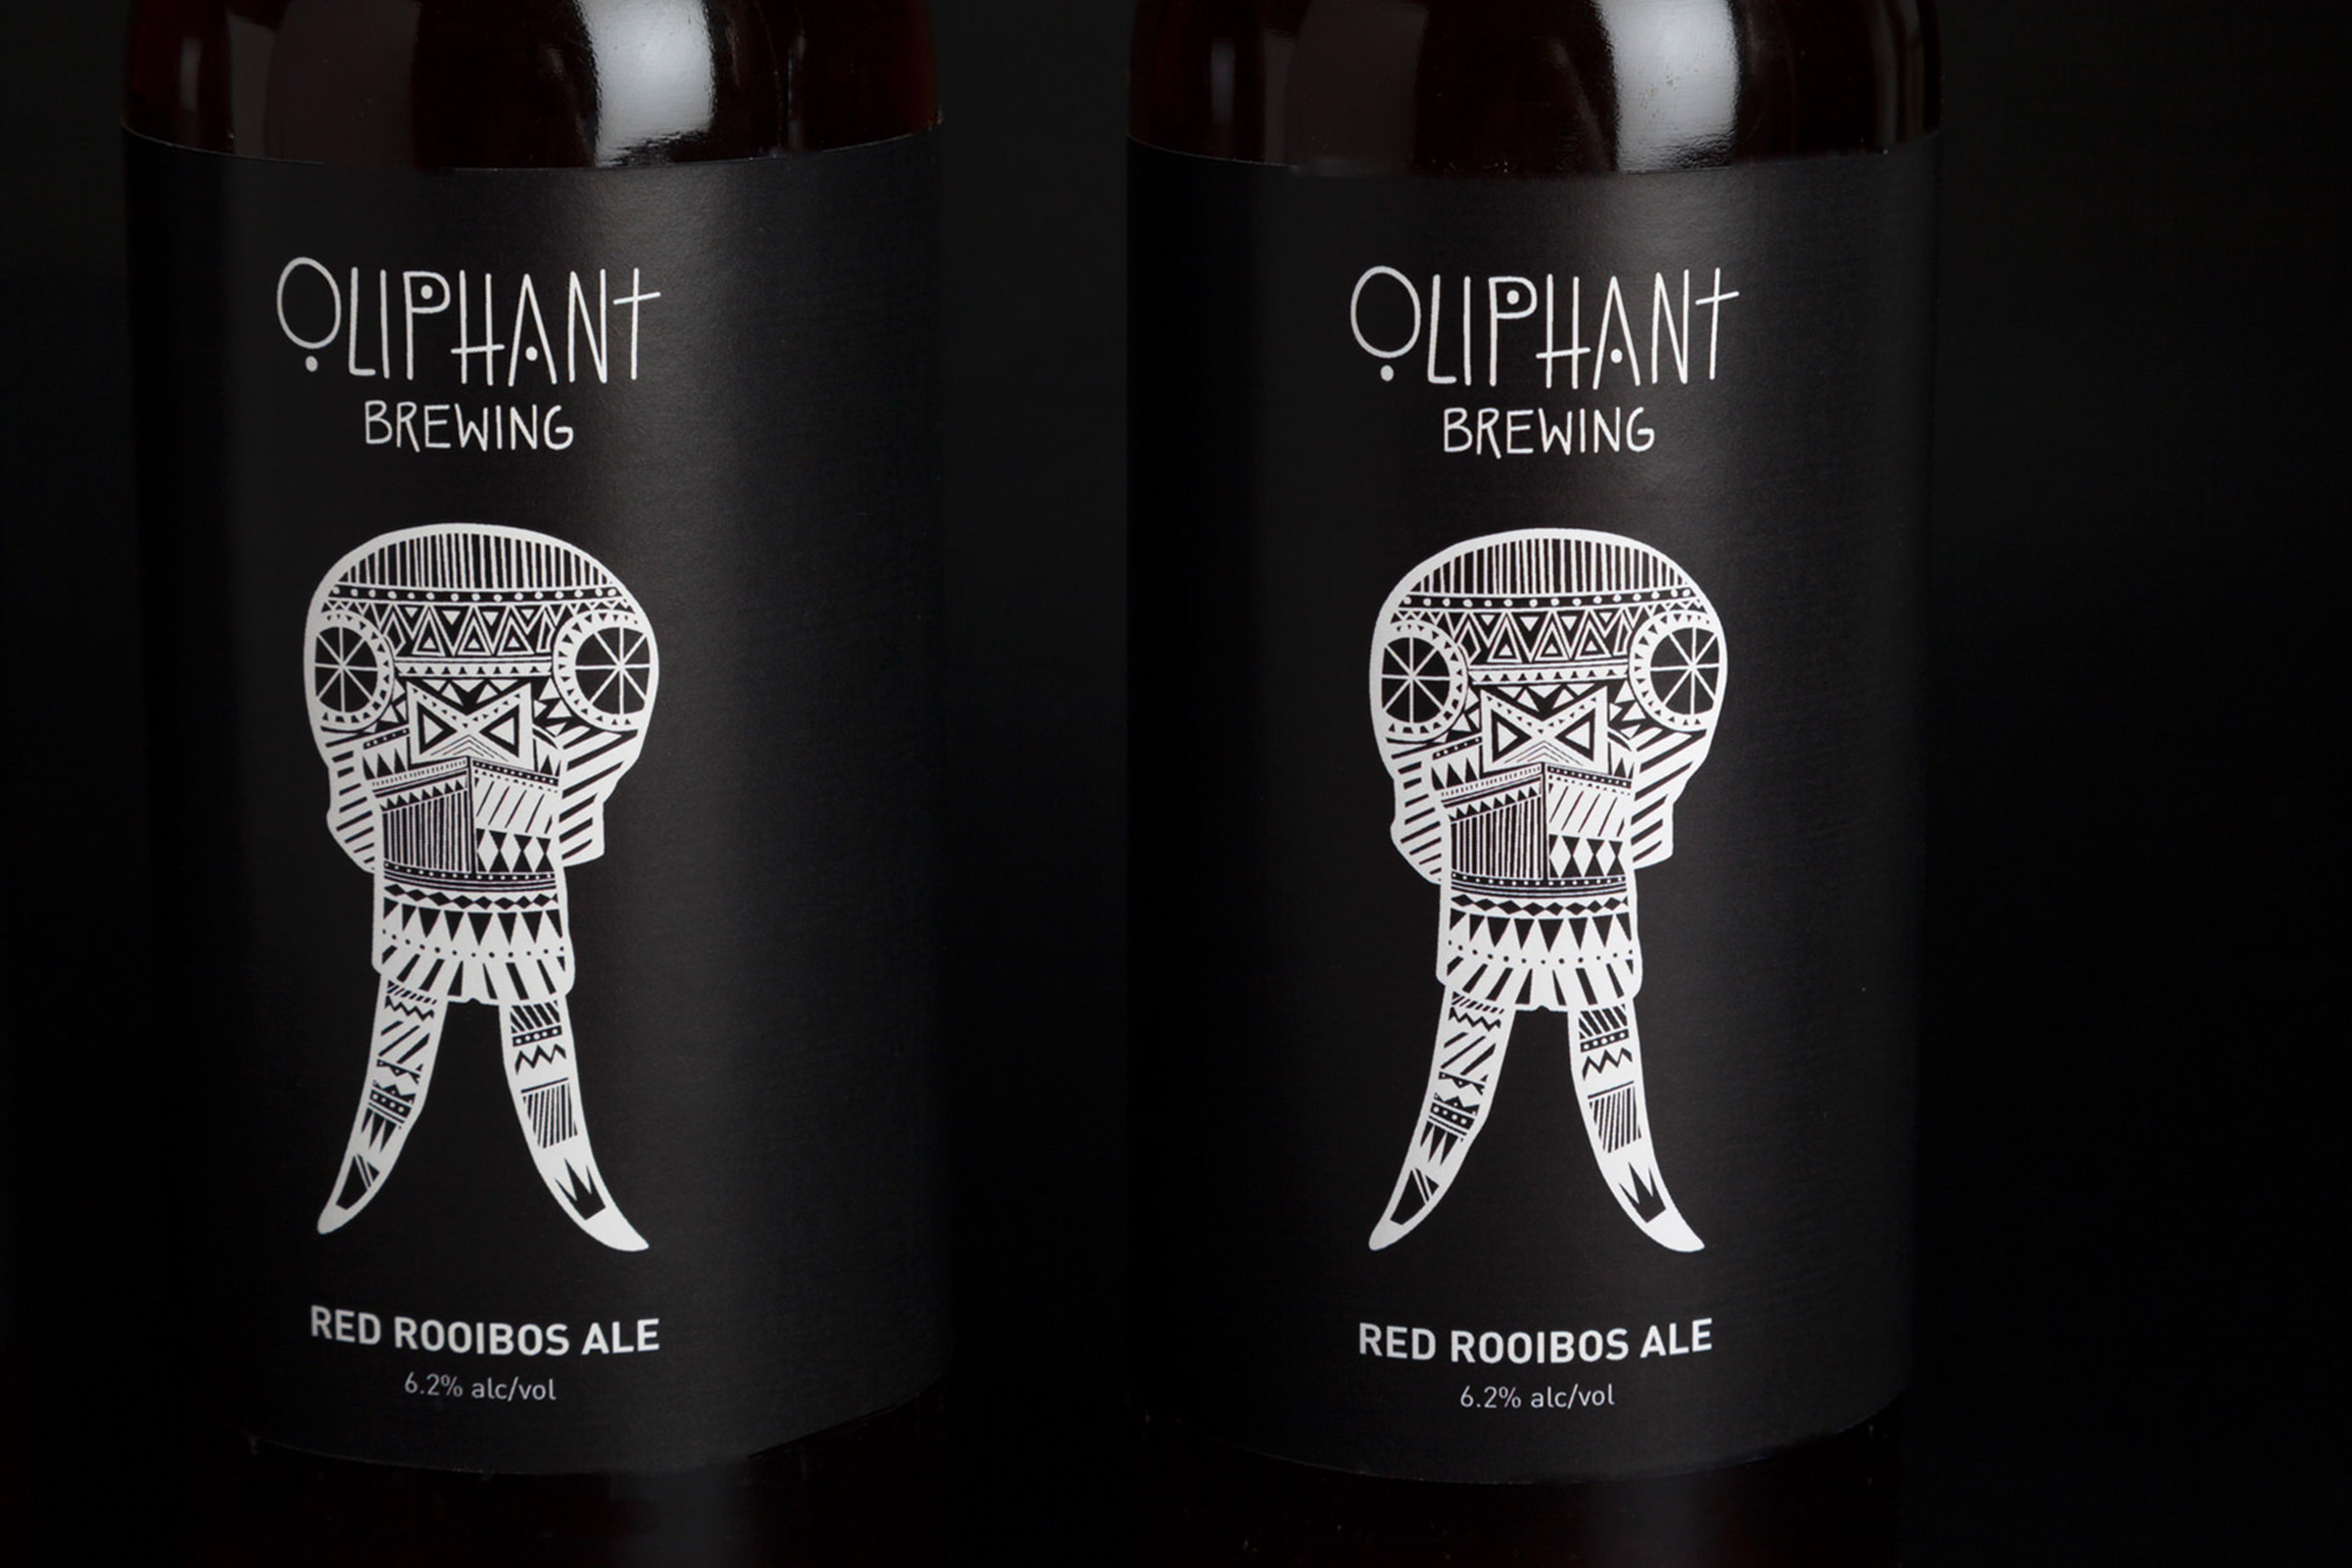 Packaging, Start Up, Artisanal Brewery, Craft Beer, New York Bier